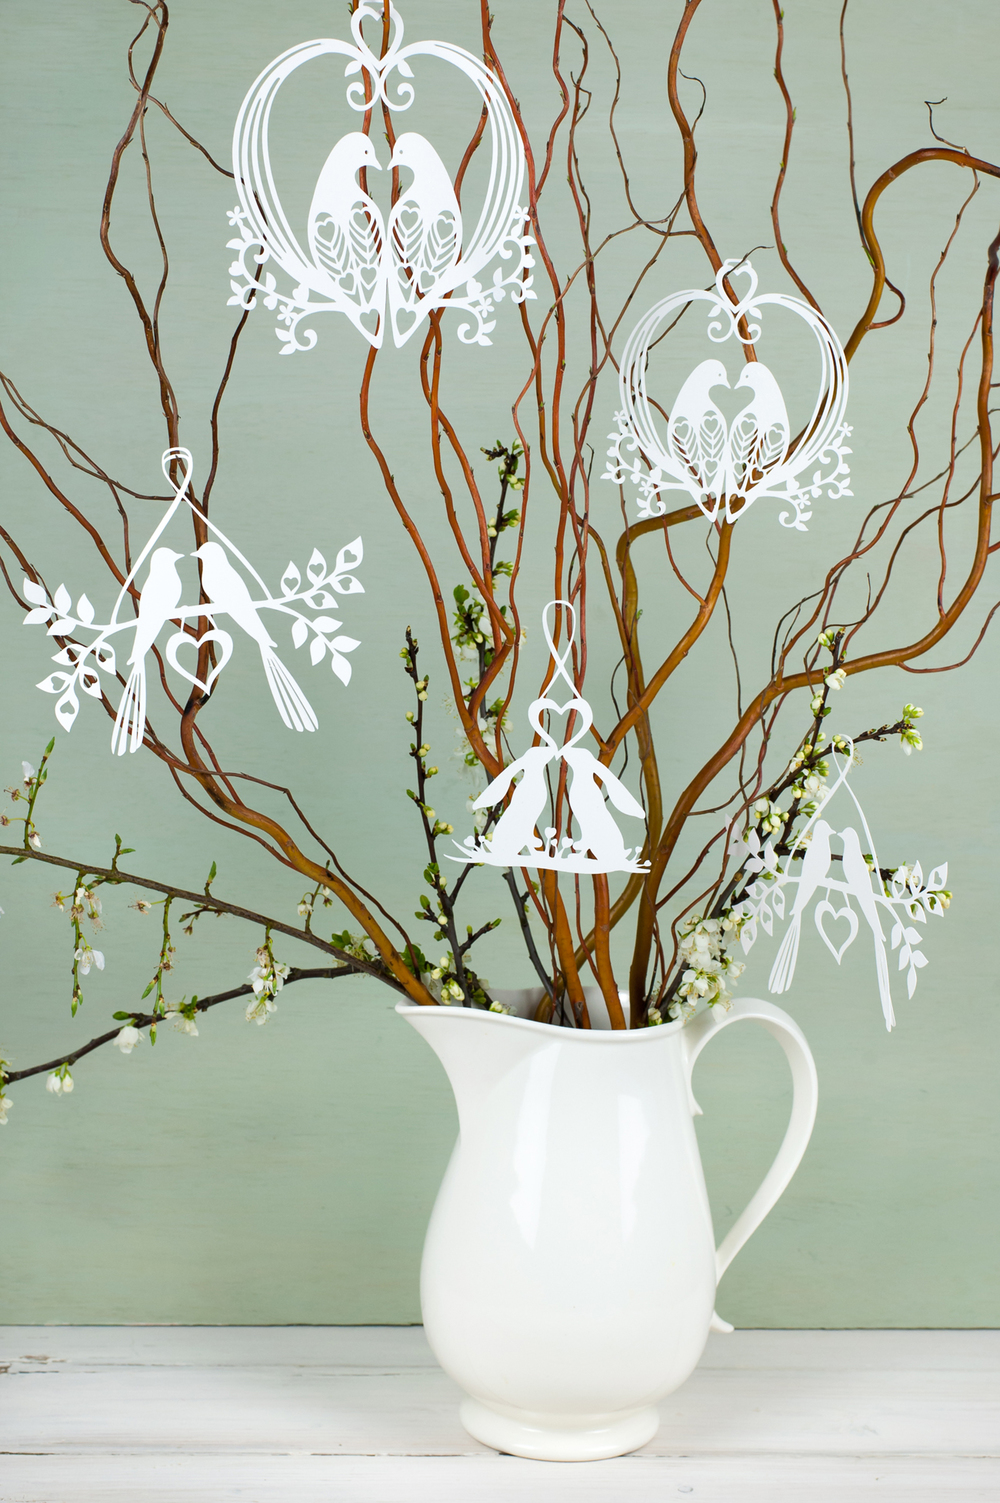 Paper cut hanging decorations